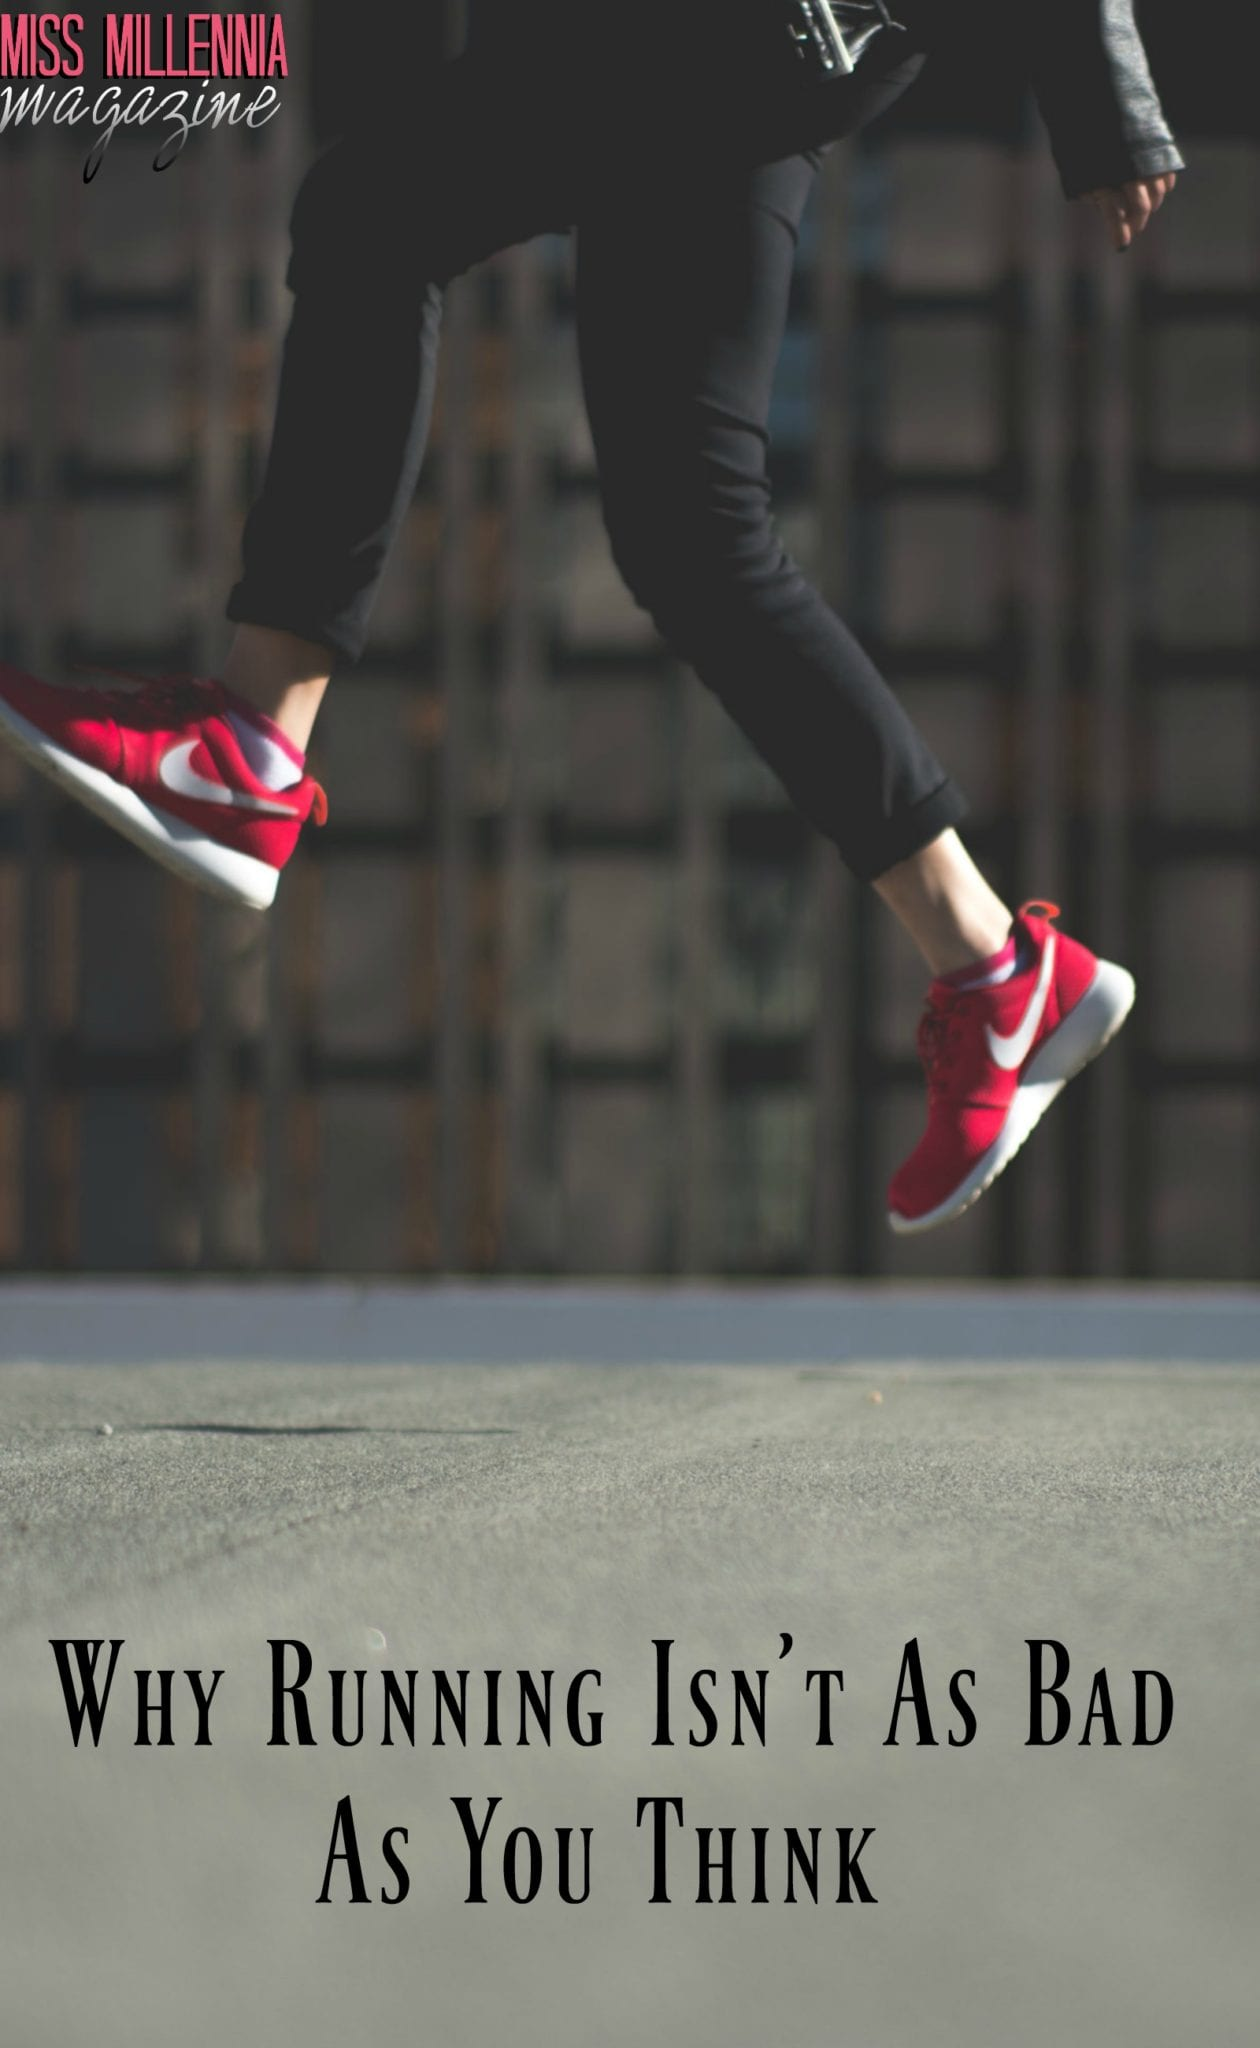 Why Running Isn't As Bad As You Think